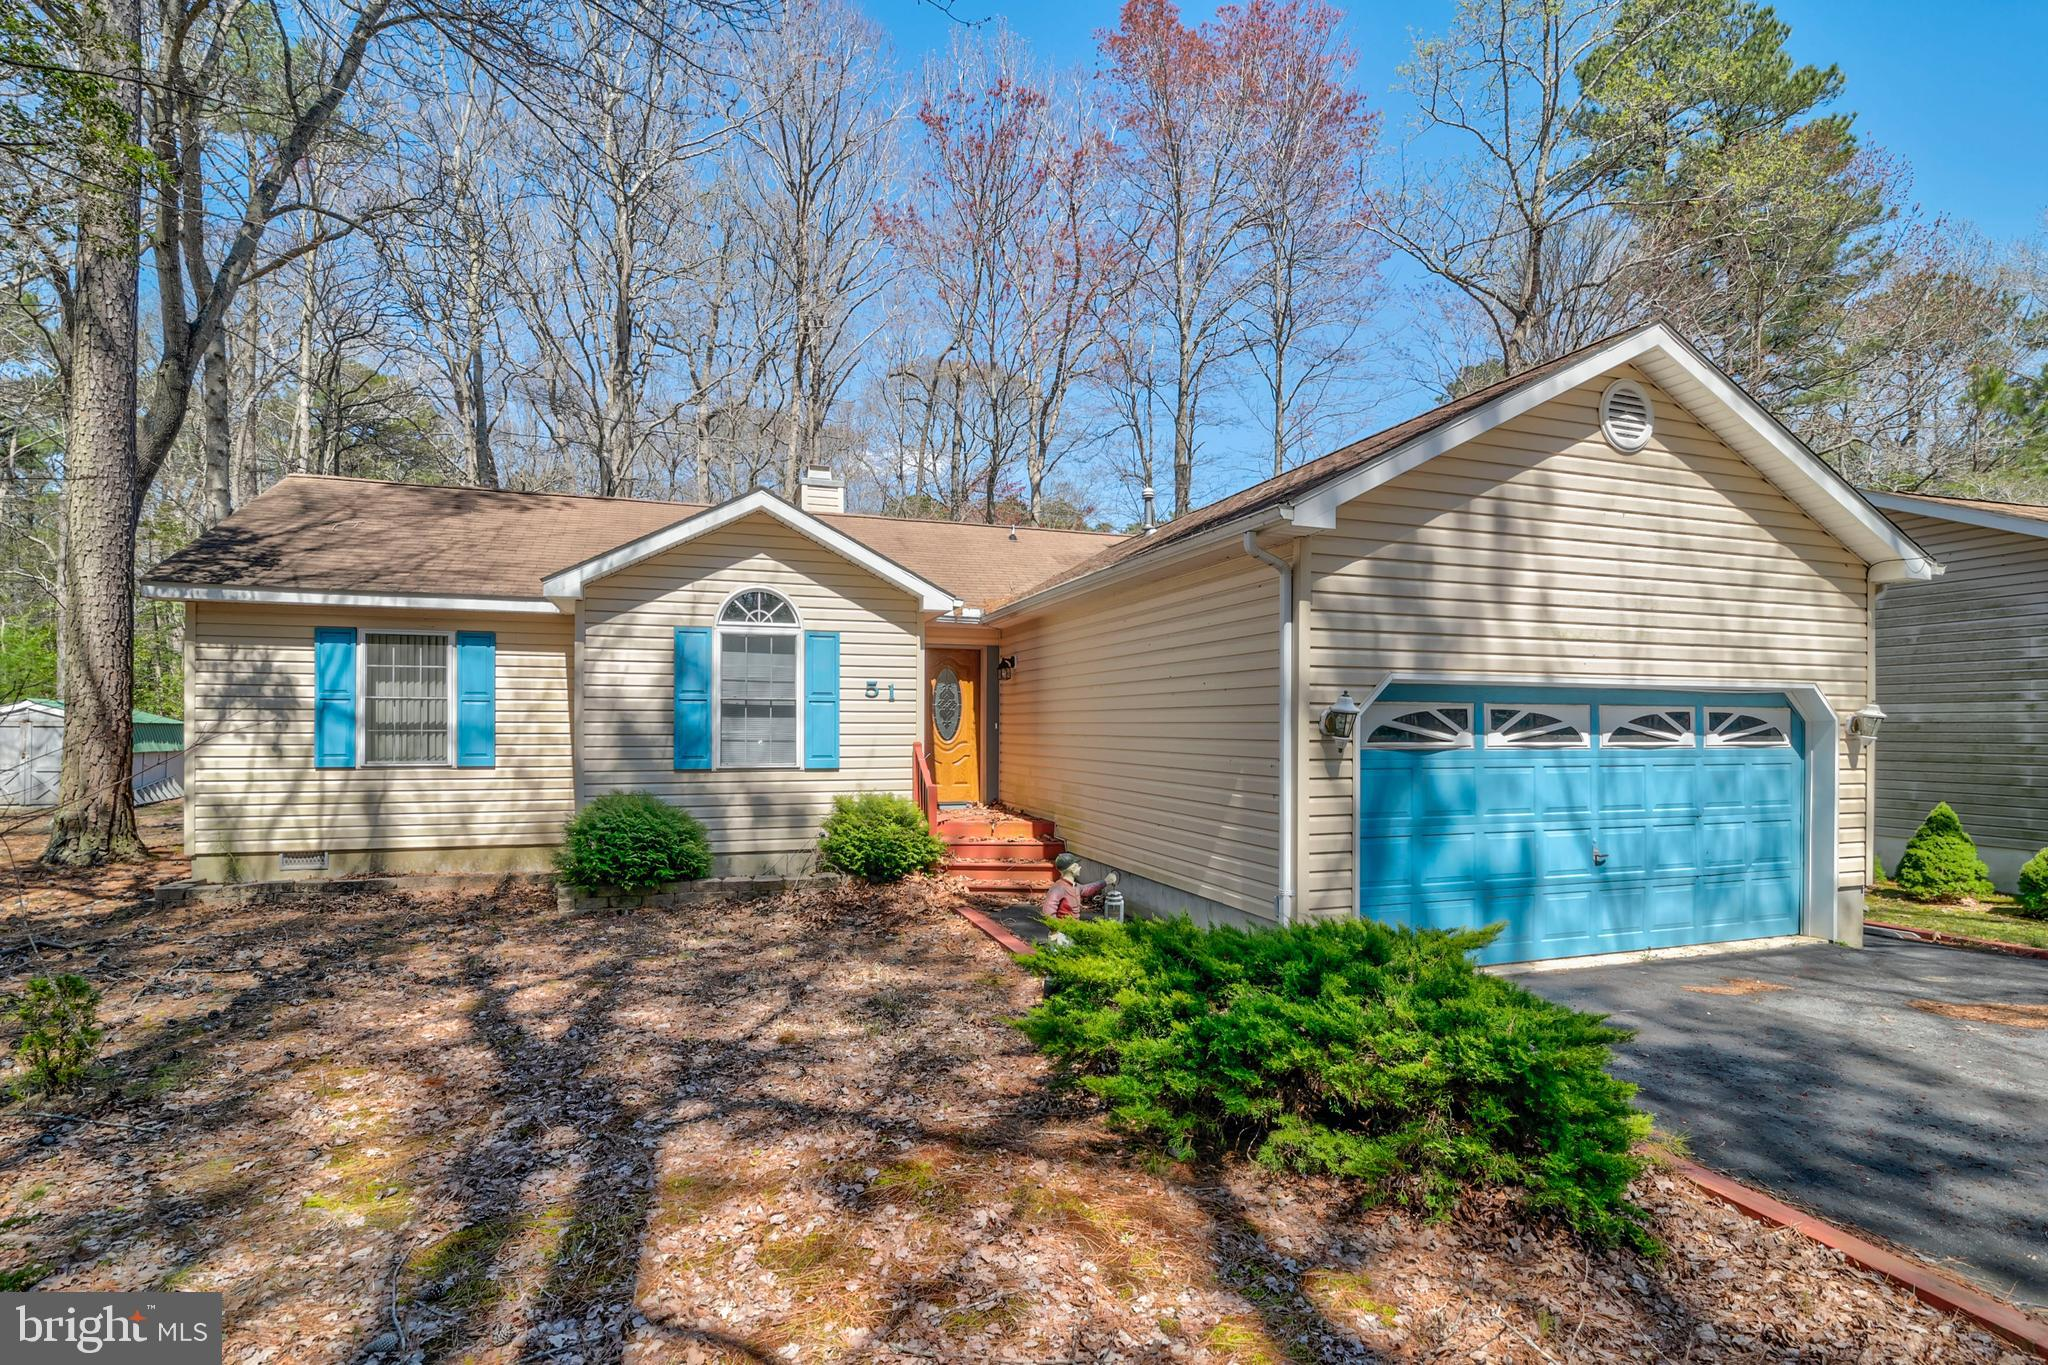 Ocean Pines Md >> 51 Tail The Fox Drive Ocean Pines Md 21811 239900